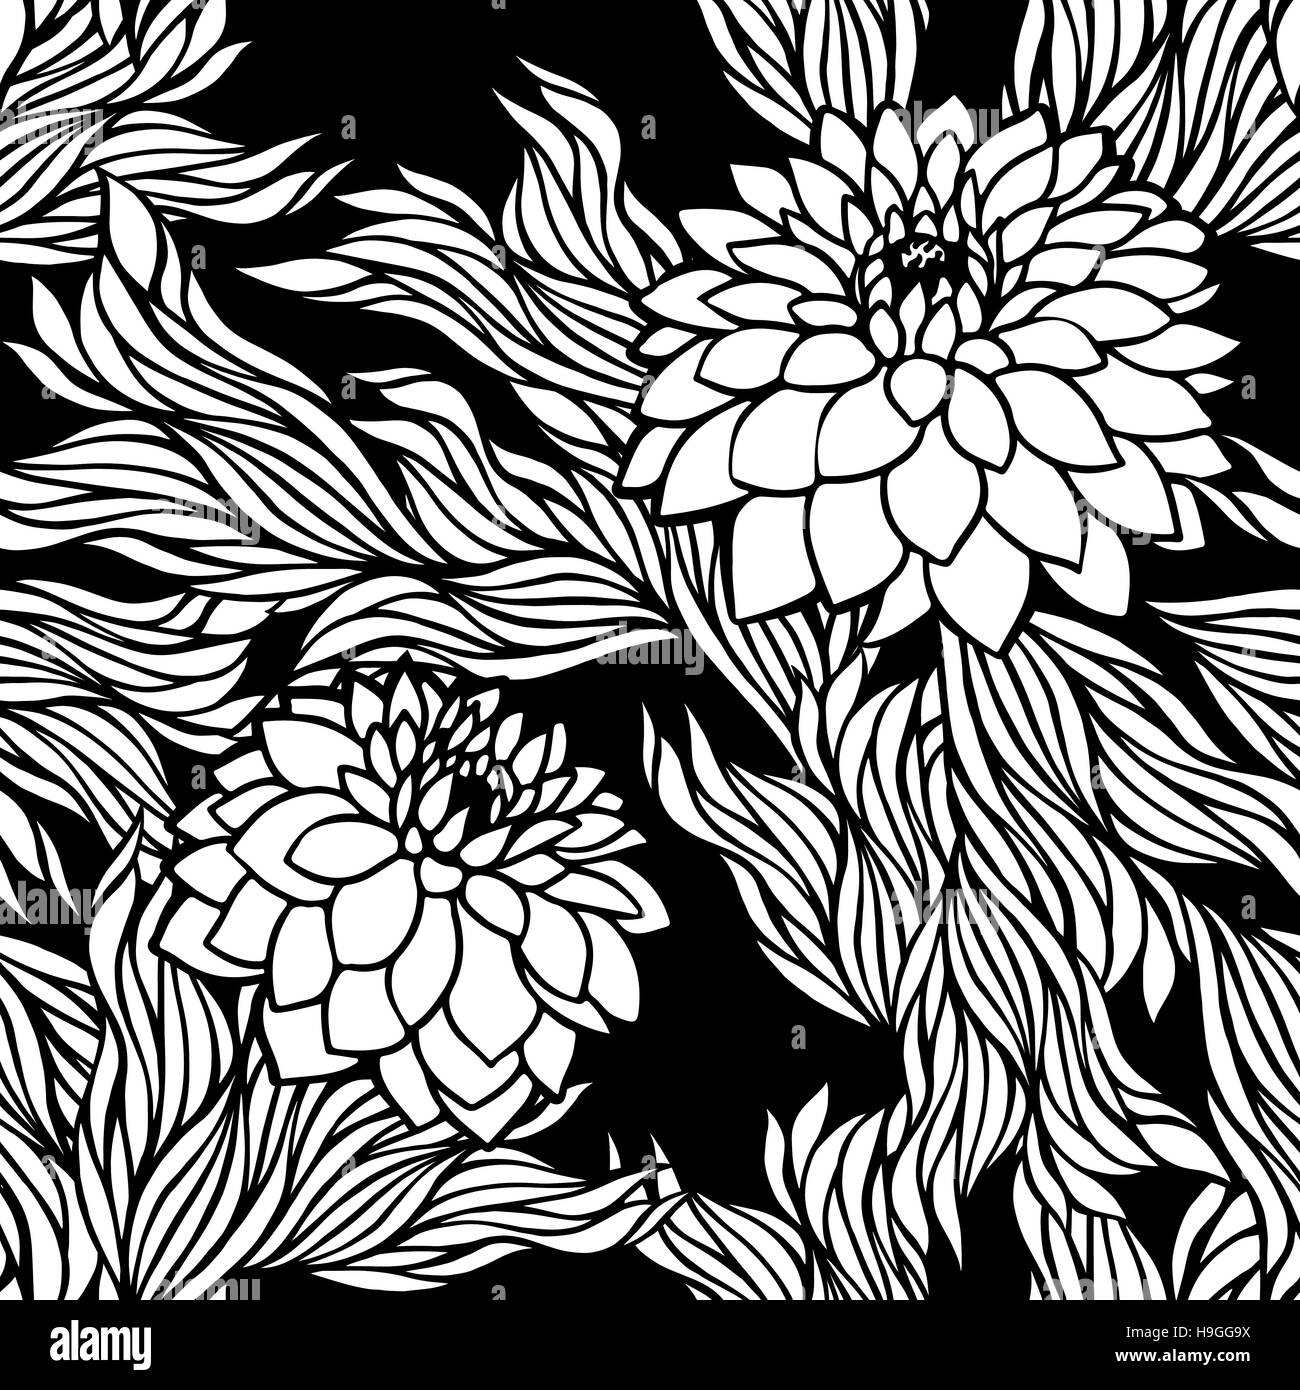 Vector Seamless Floral Pattern Black And White Monochrome In Retro